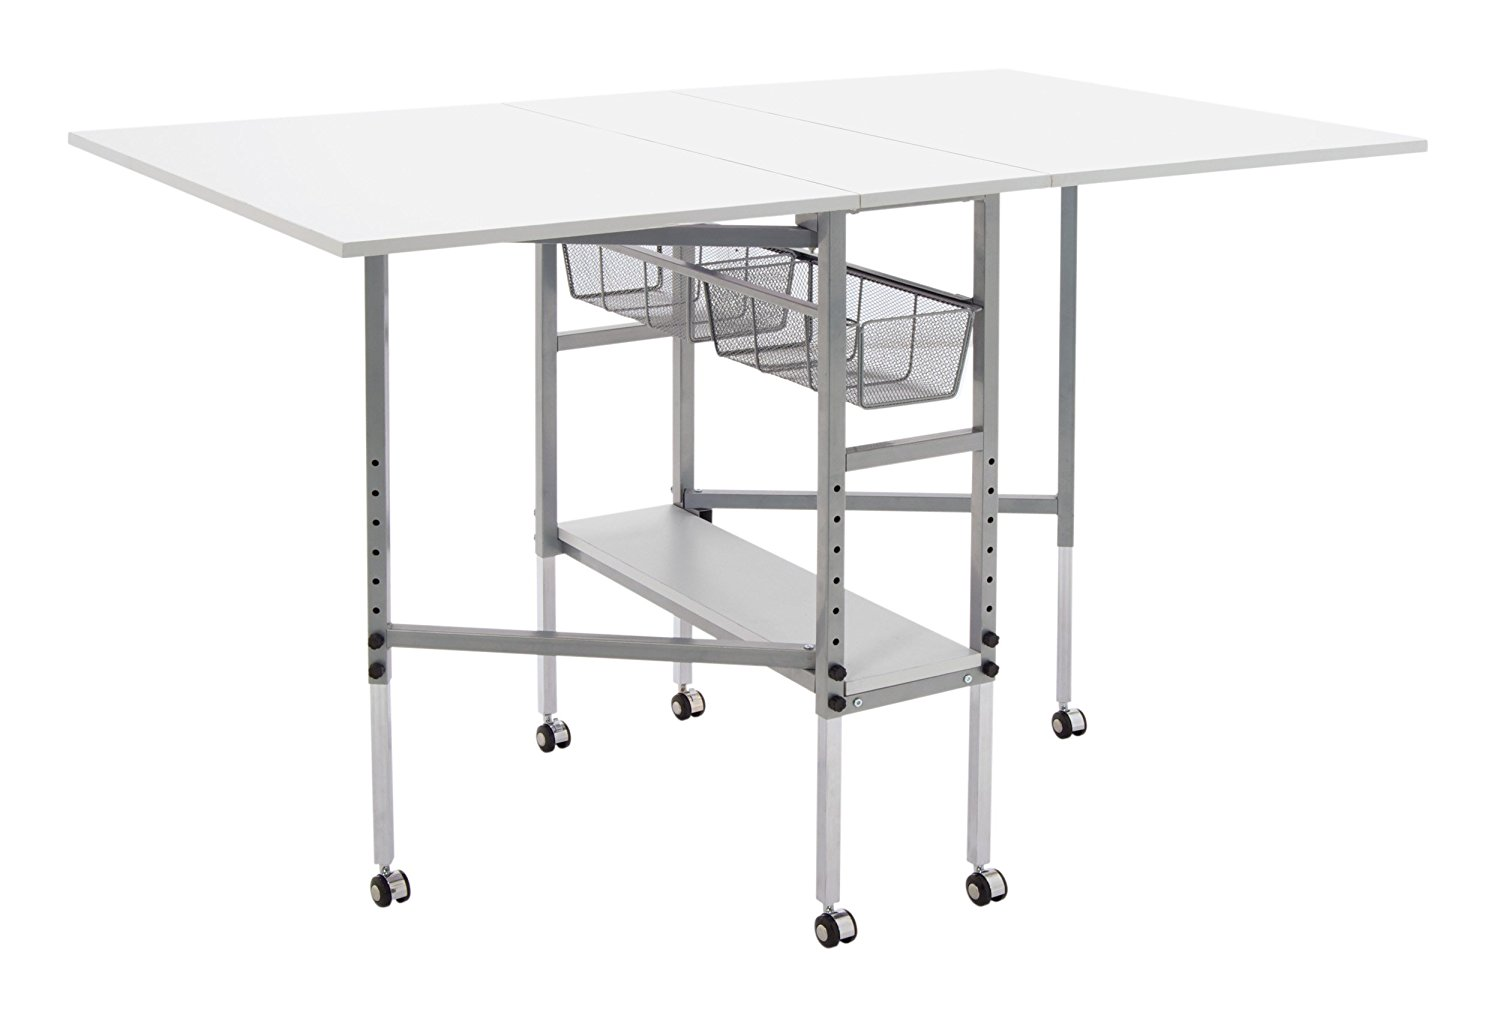 Best sewing table: It's large surface will be helpful for your use